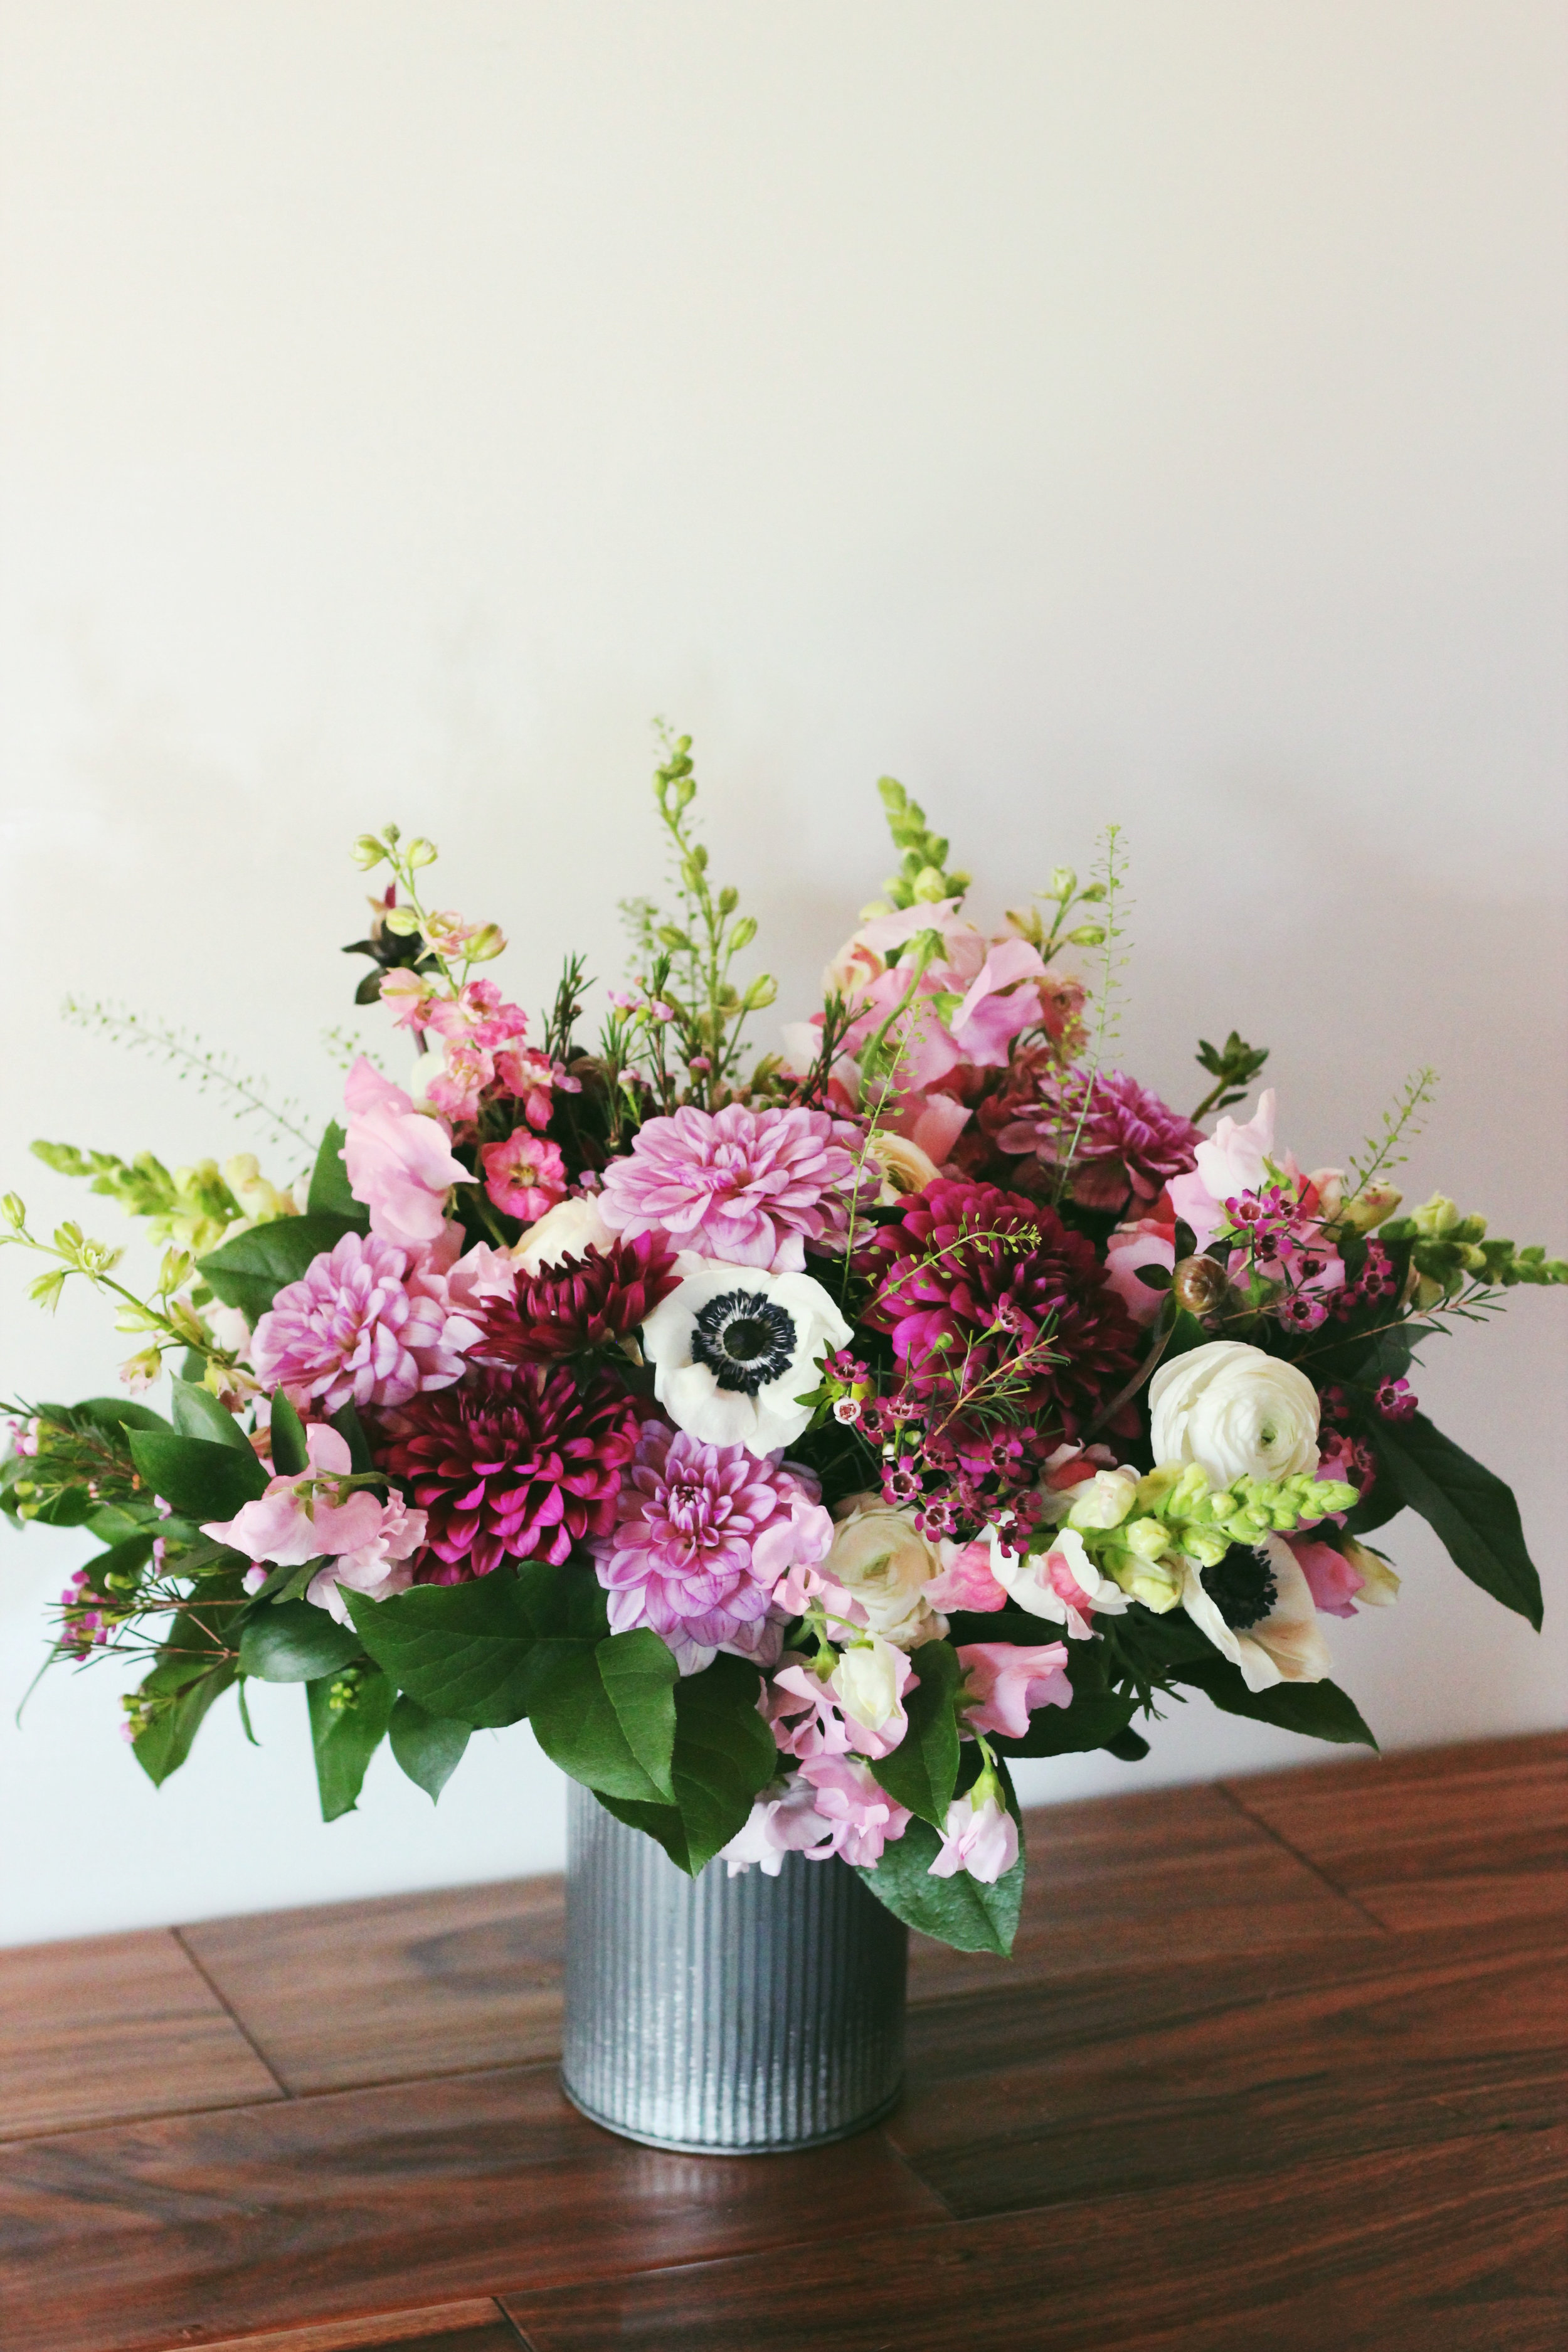 Pink and purple dahlia snapdragon white and black anemone white ranunculus farmers choice flower arrangement - Roots and Wildflowers